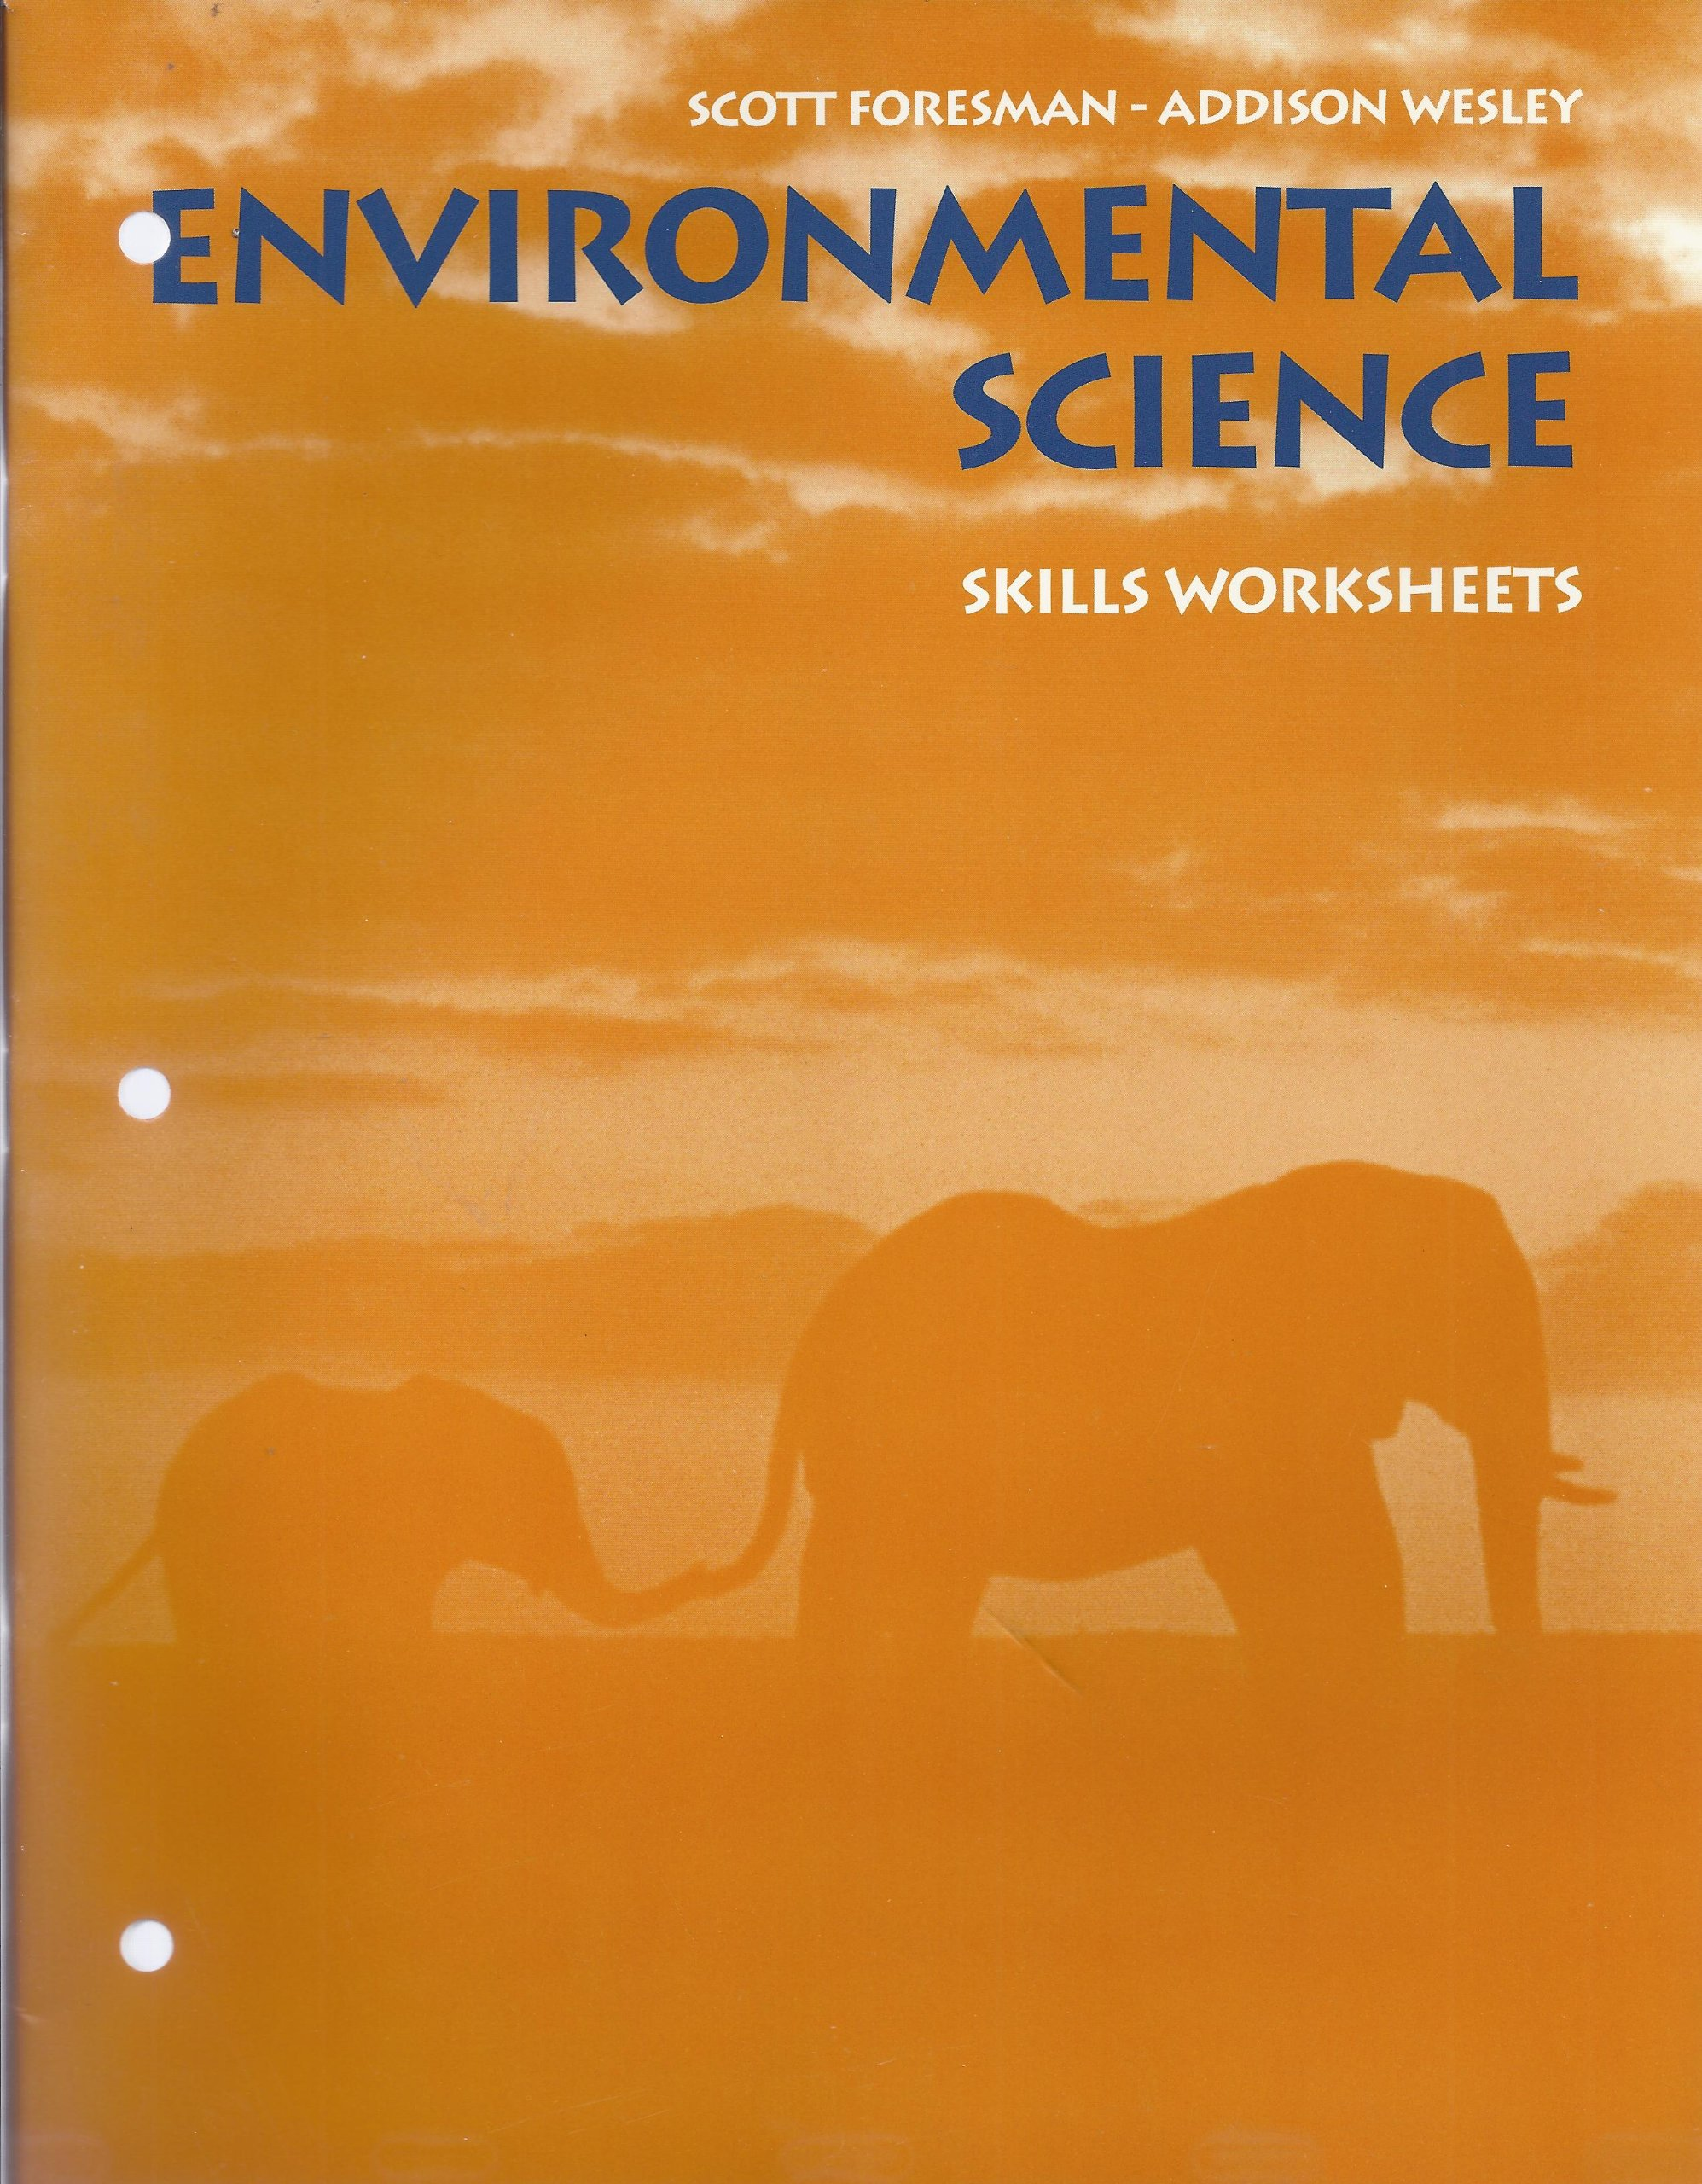 Worksheets Scott Foresman Worksheets environmental science skill worksheets scott foresman addison wesley 9780201333084 amazon com books